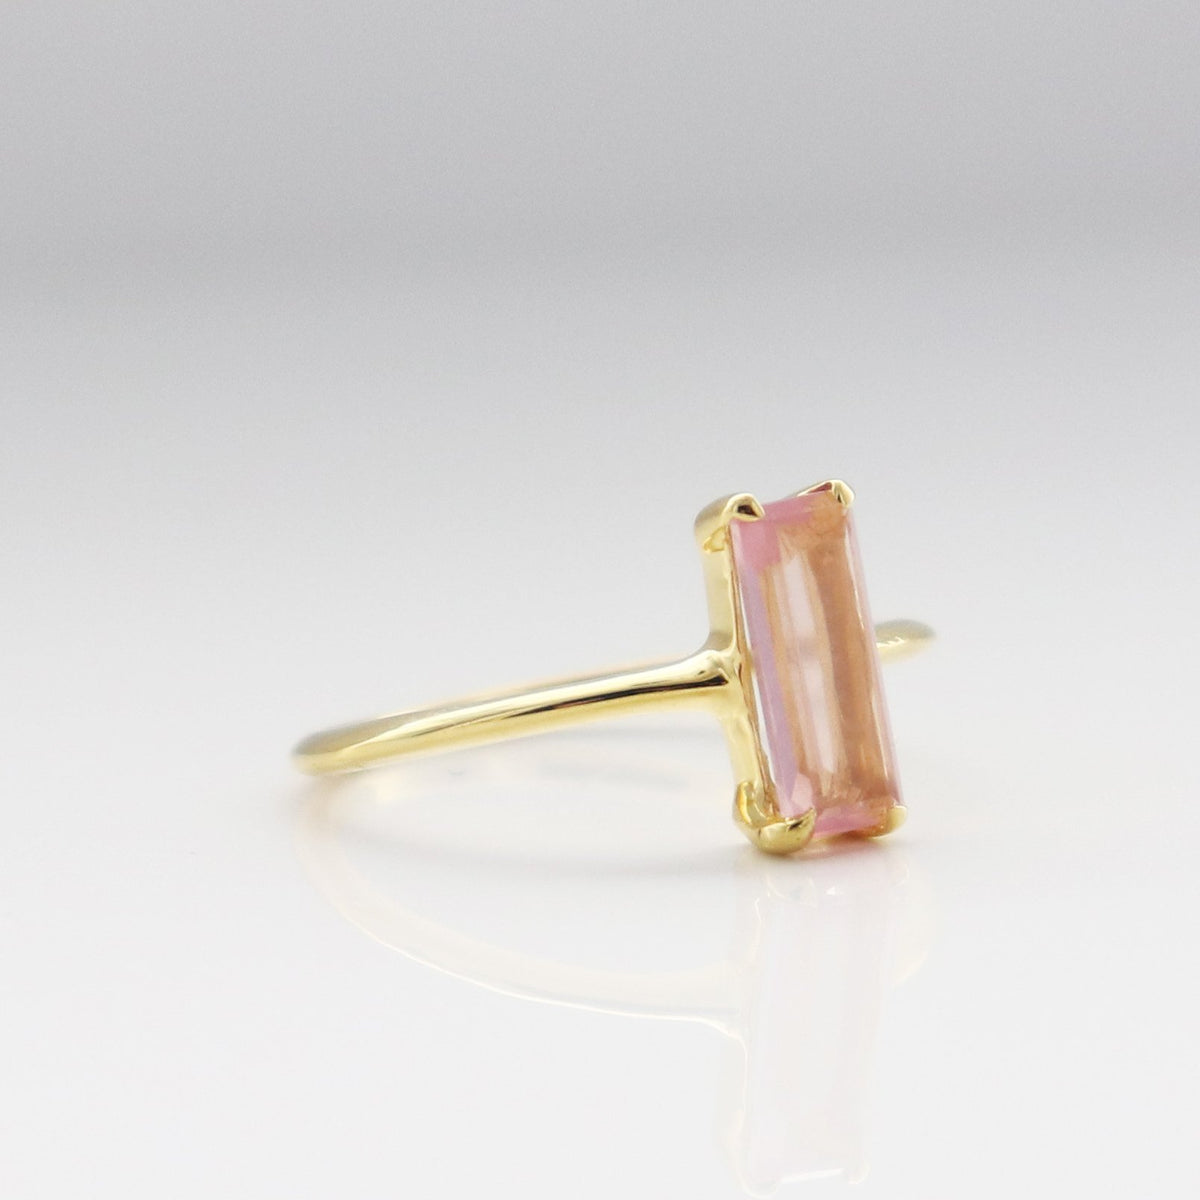 LOYAL RING PINK QUARTZ & GOLD - SO PRETTY CARA COTTER